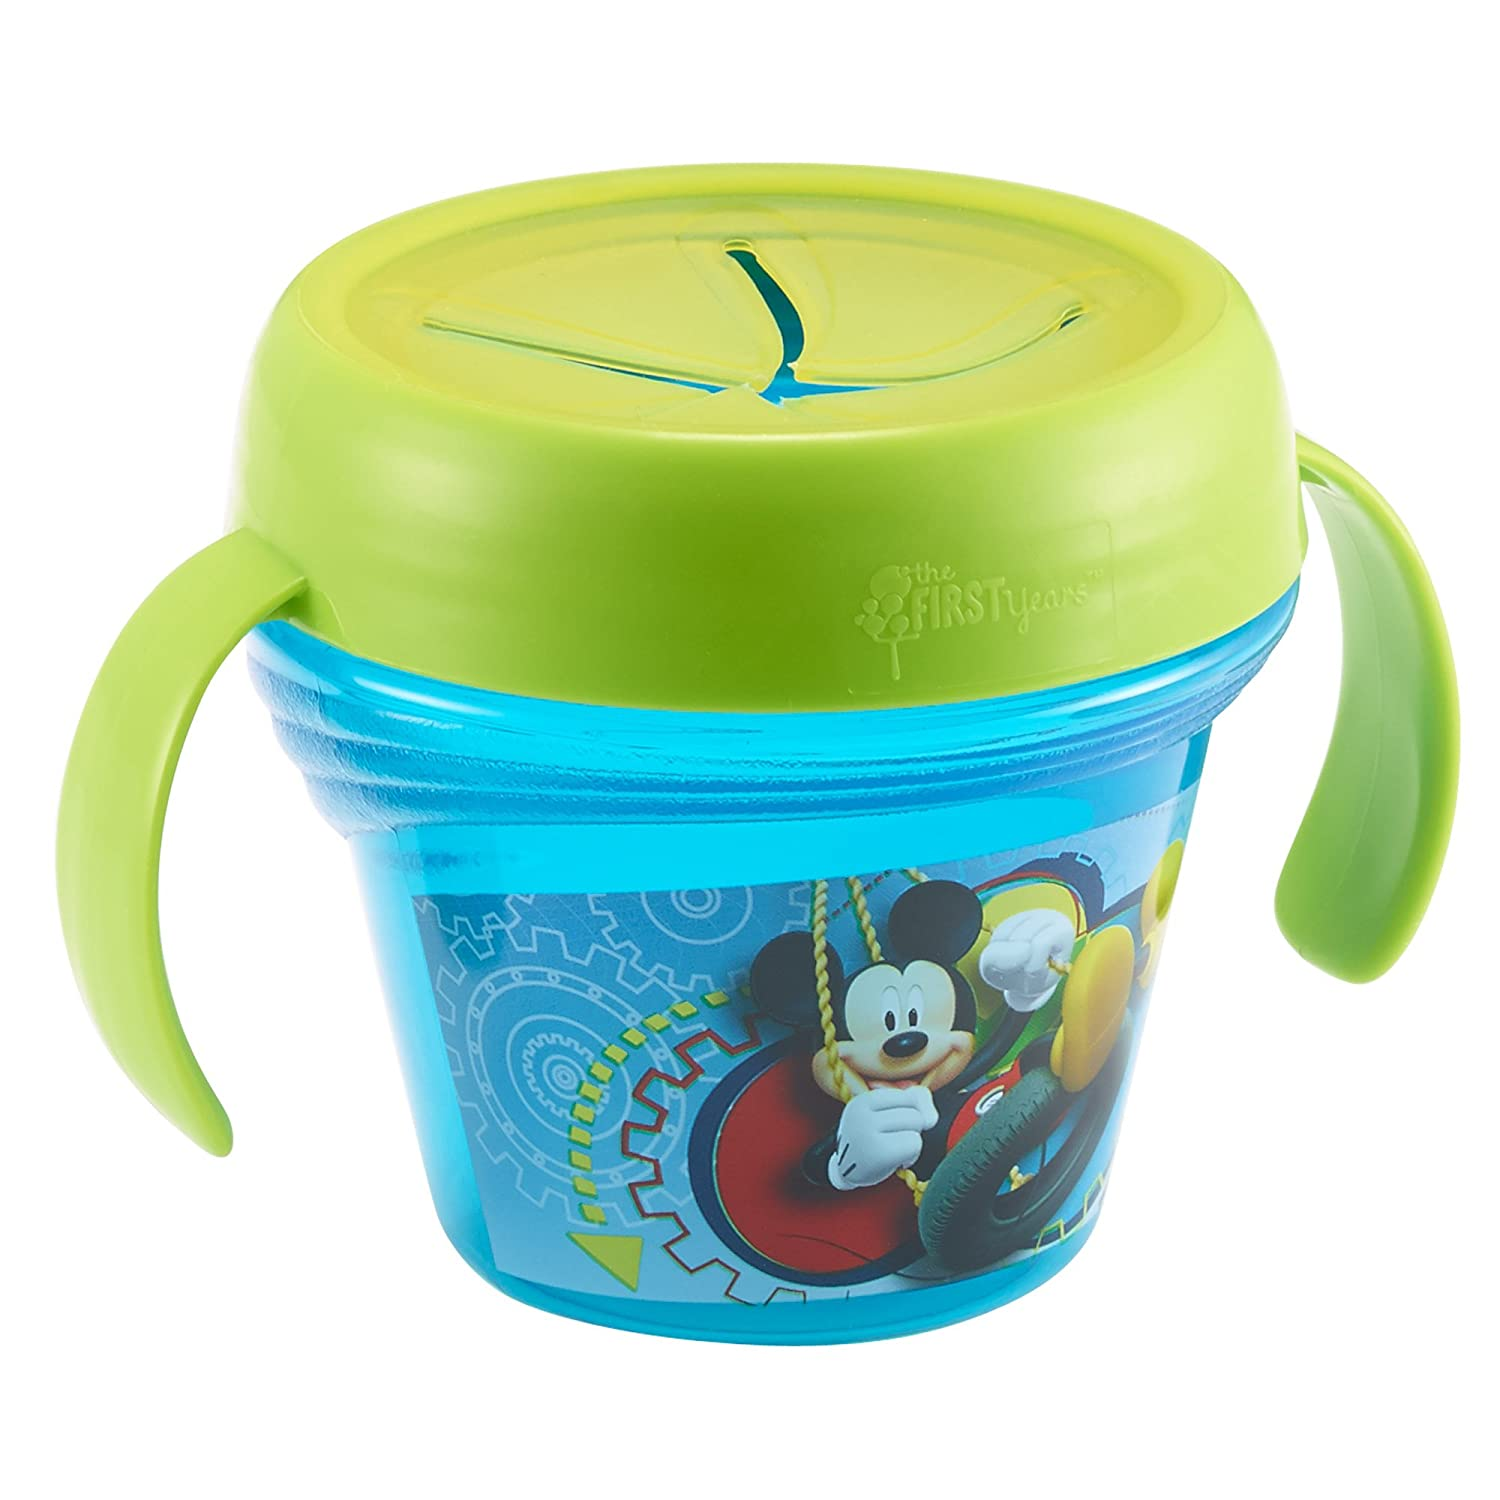 The First Years Baby Mickey Mouse Spill-Proof Snack Bowl